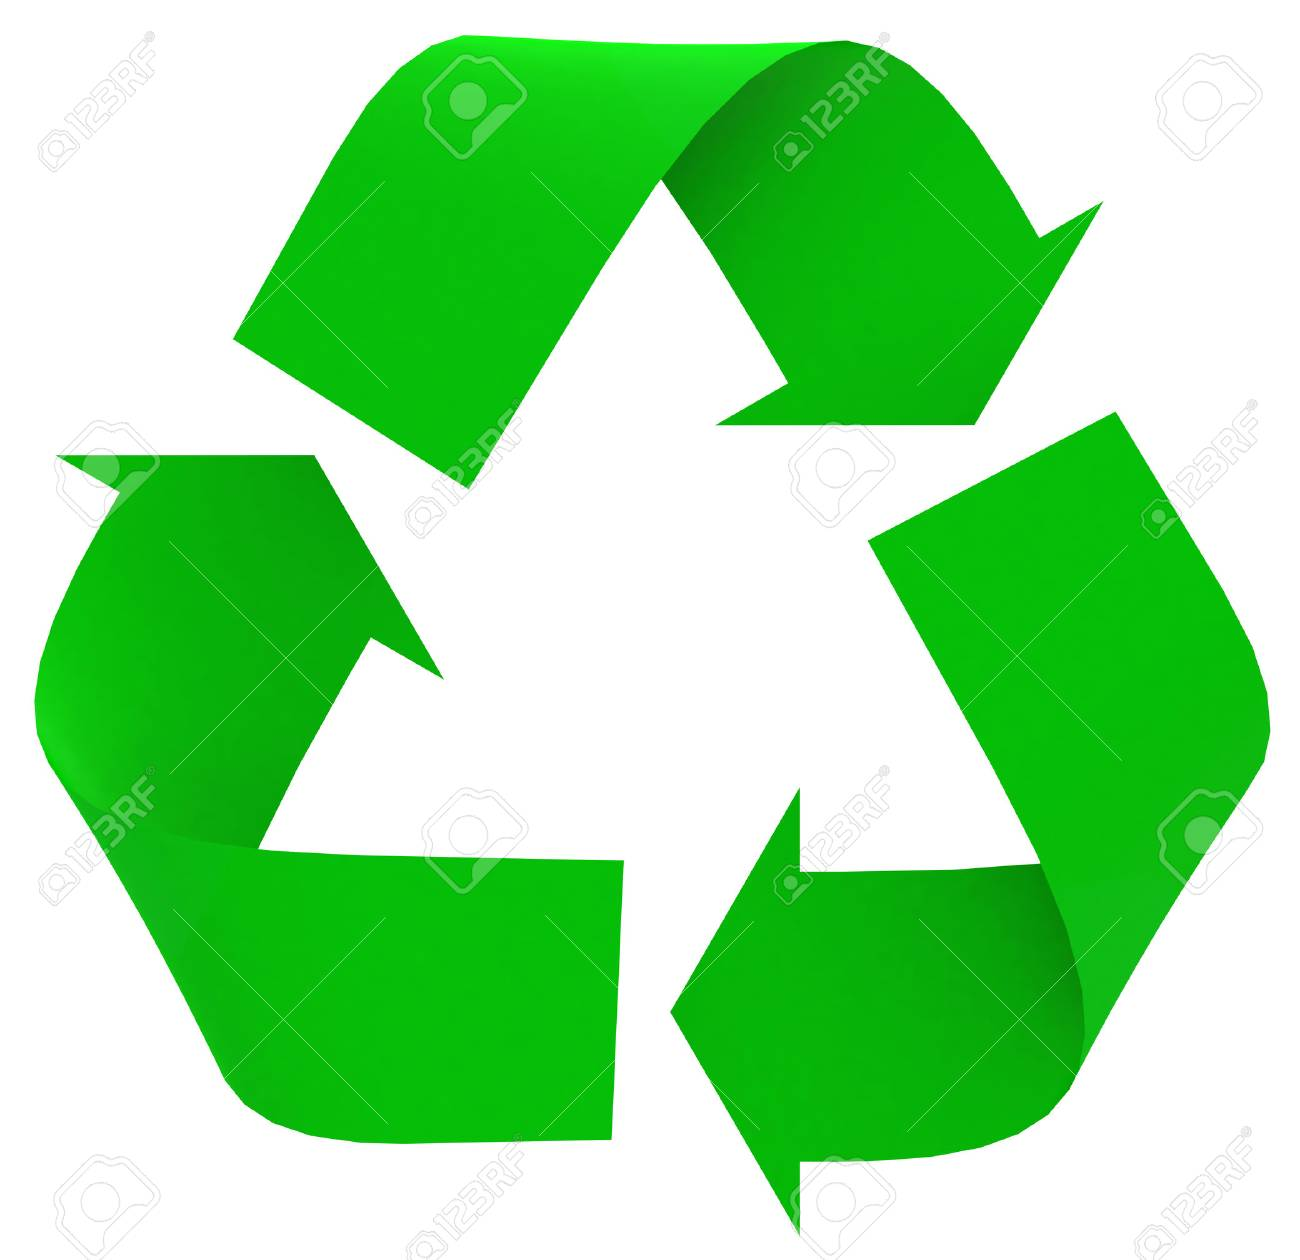 recycling - 27647843